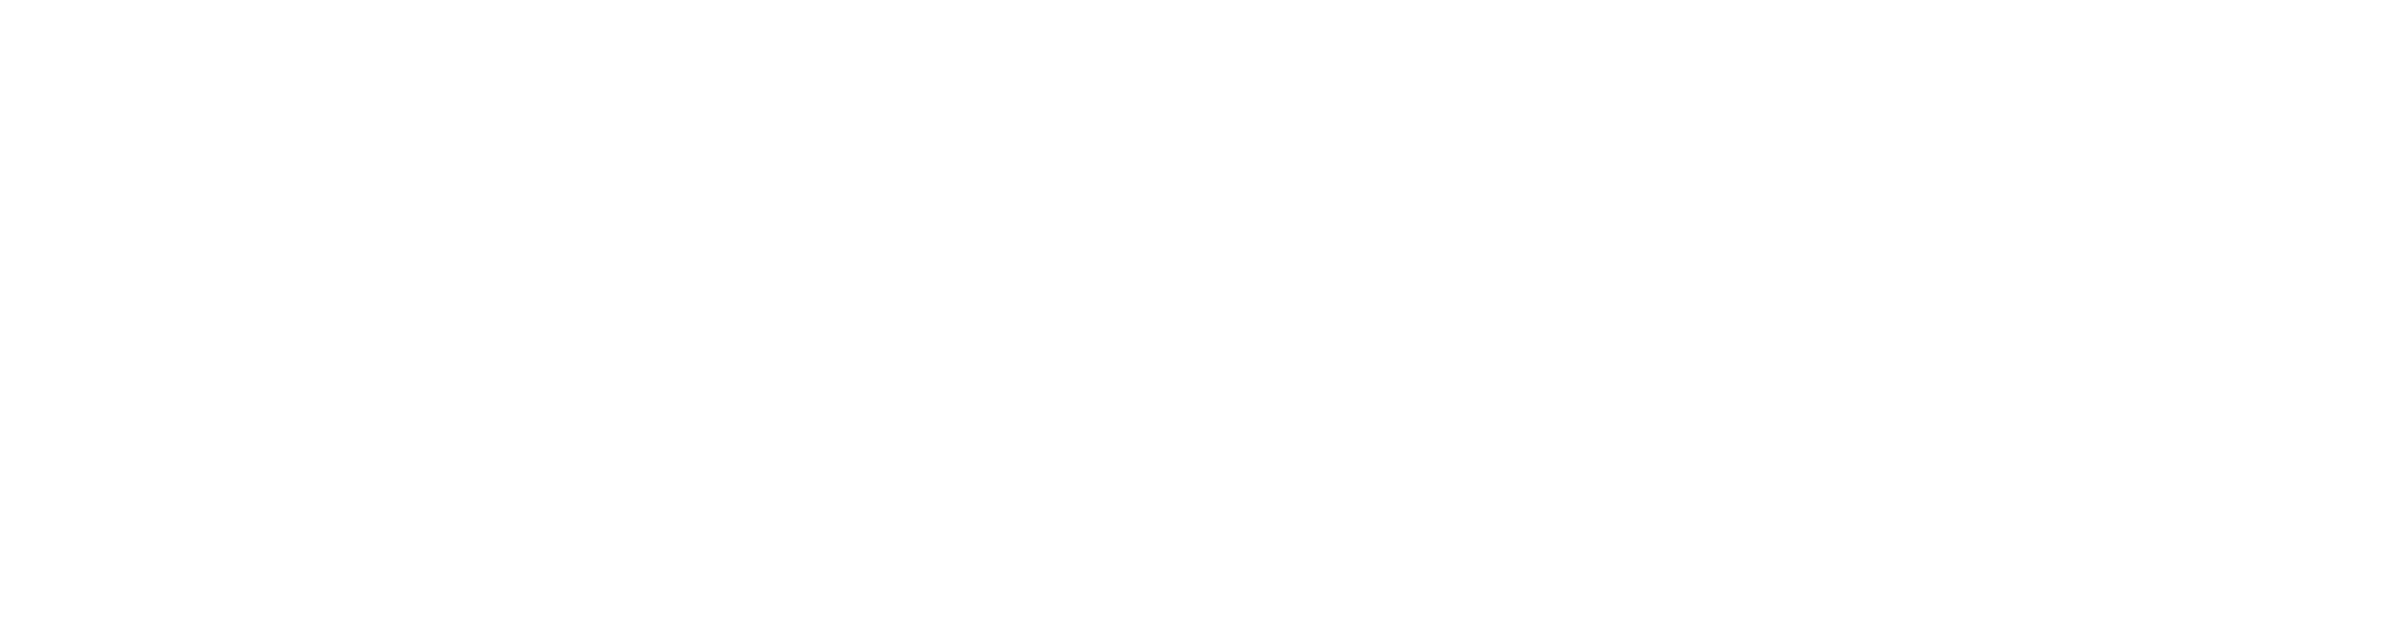 WIDE_AWAKE_FARM_LOGO_WHITE_2400X640.png